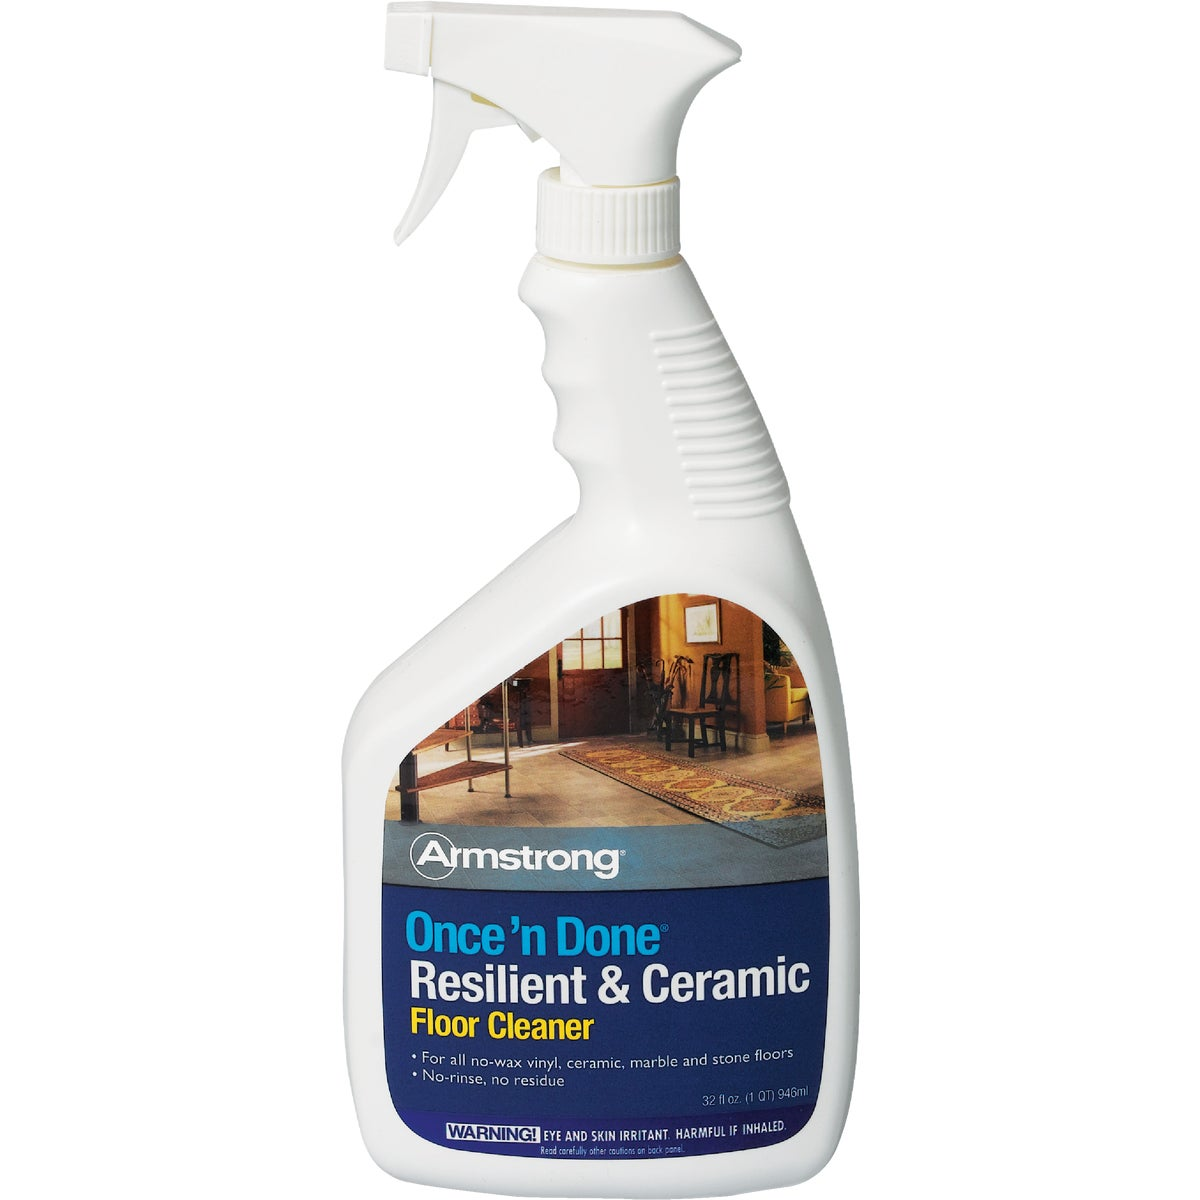 Armstrong Once 'N Done Resilient & Ceramic Floor Cleaner